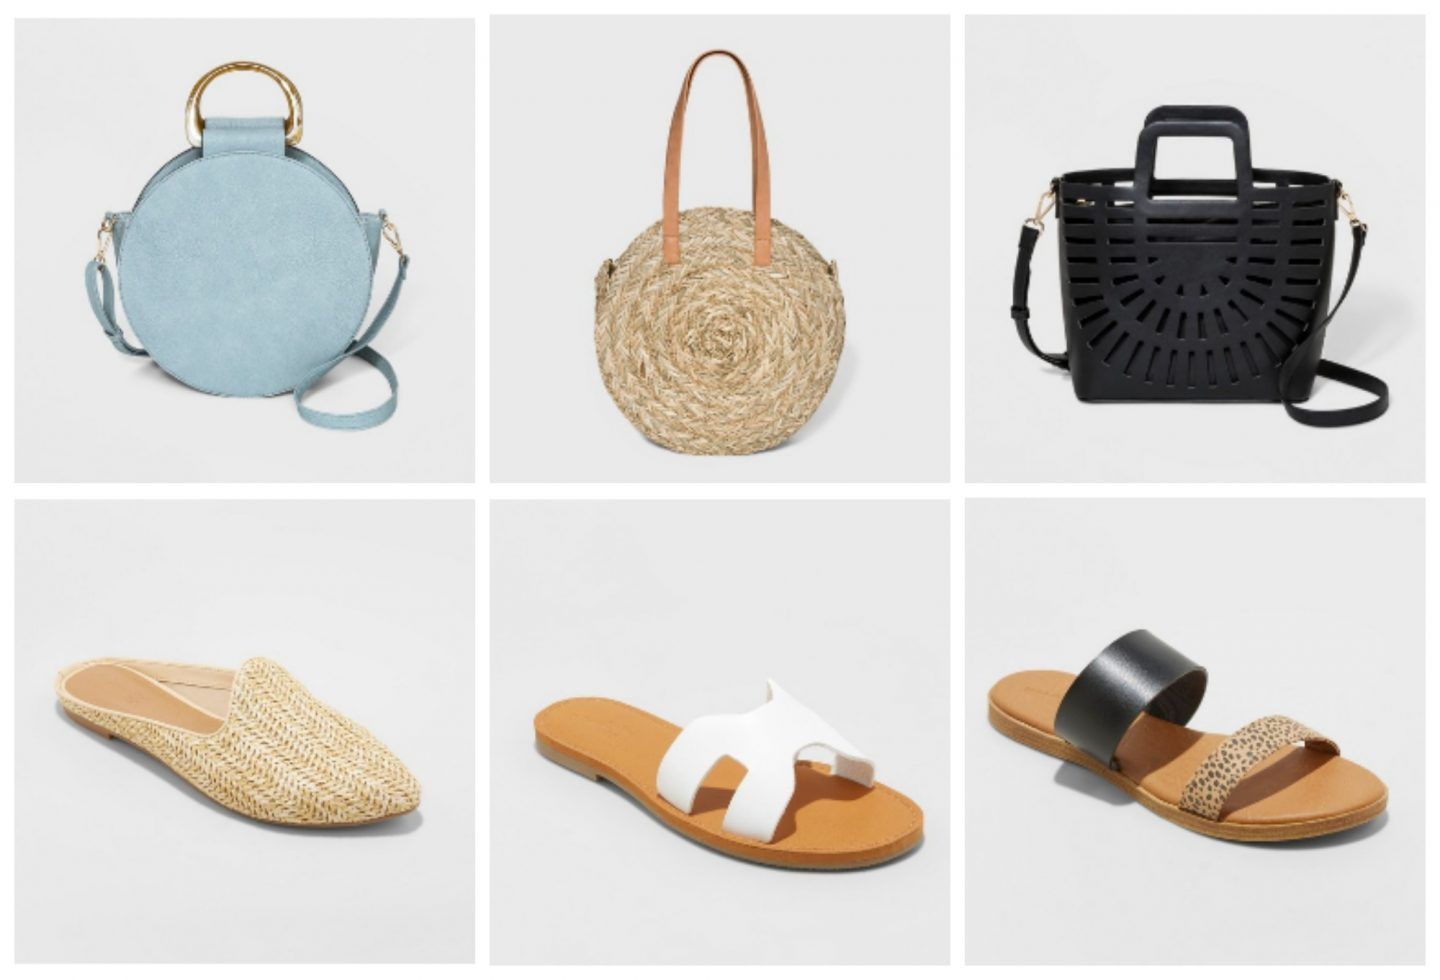 Tuesday's Cravings: Spring Bags and Shoes